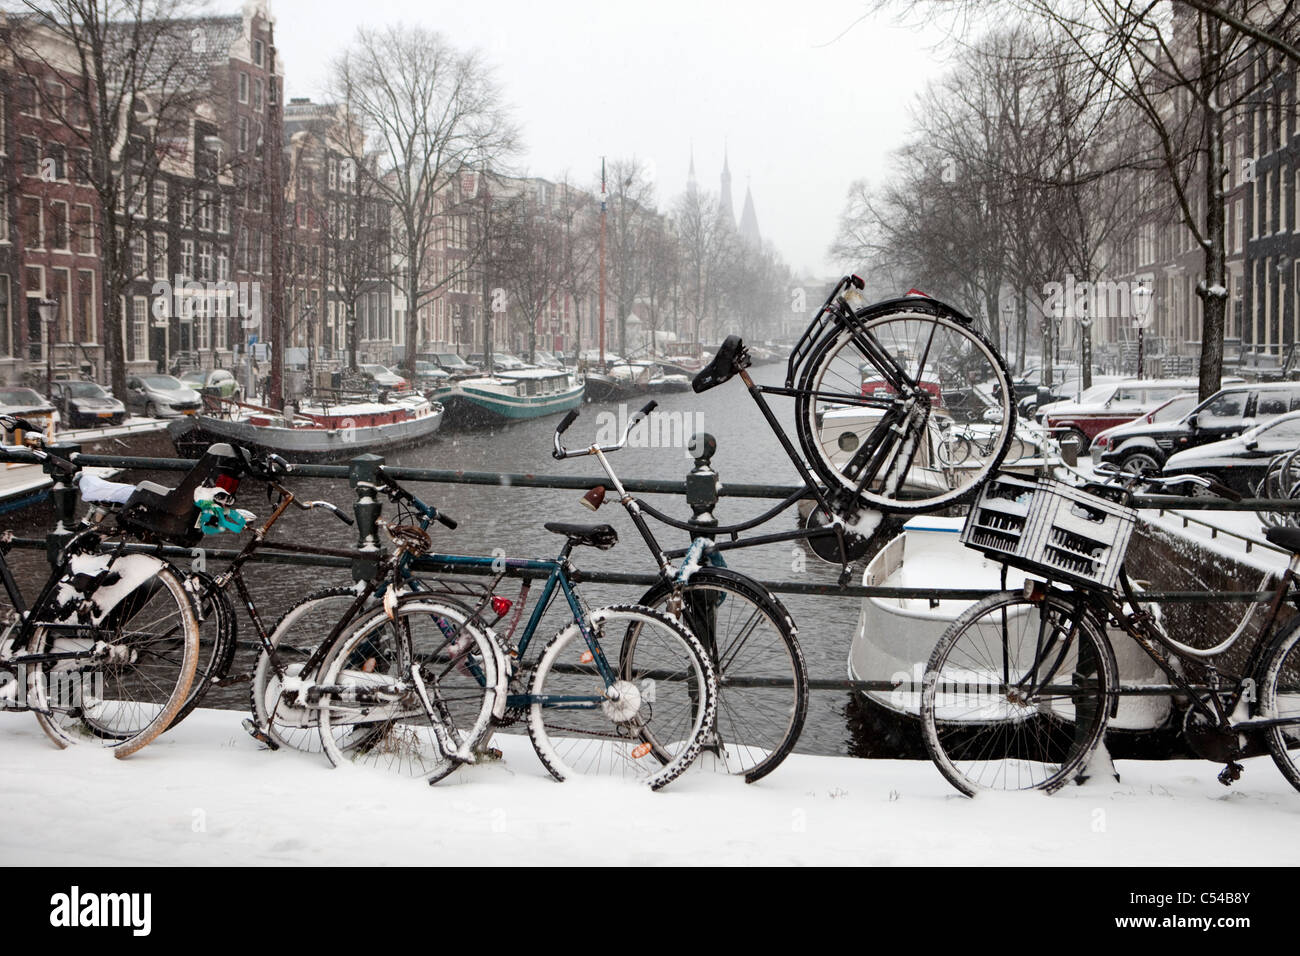 The Netherlands, Amsterdam, 17th century houses at canal called Keizersgracht. Winter, snow. Bicycles on bridge. - Stock Image